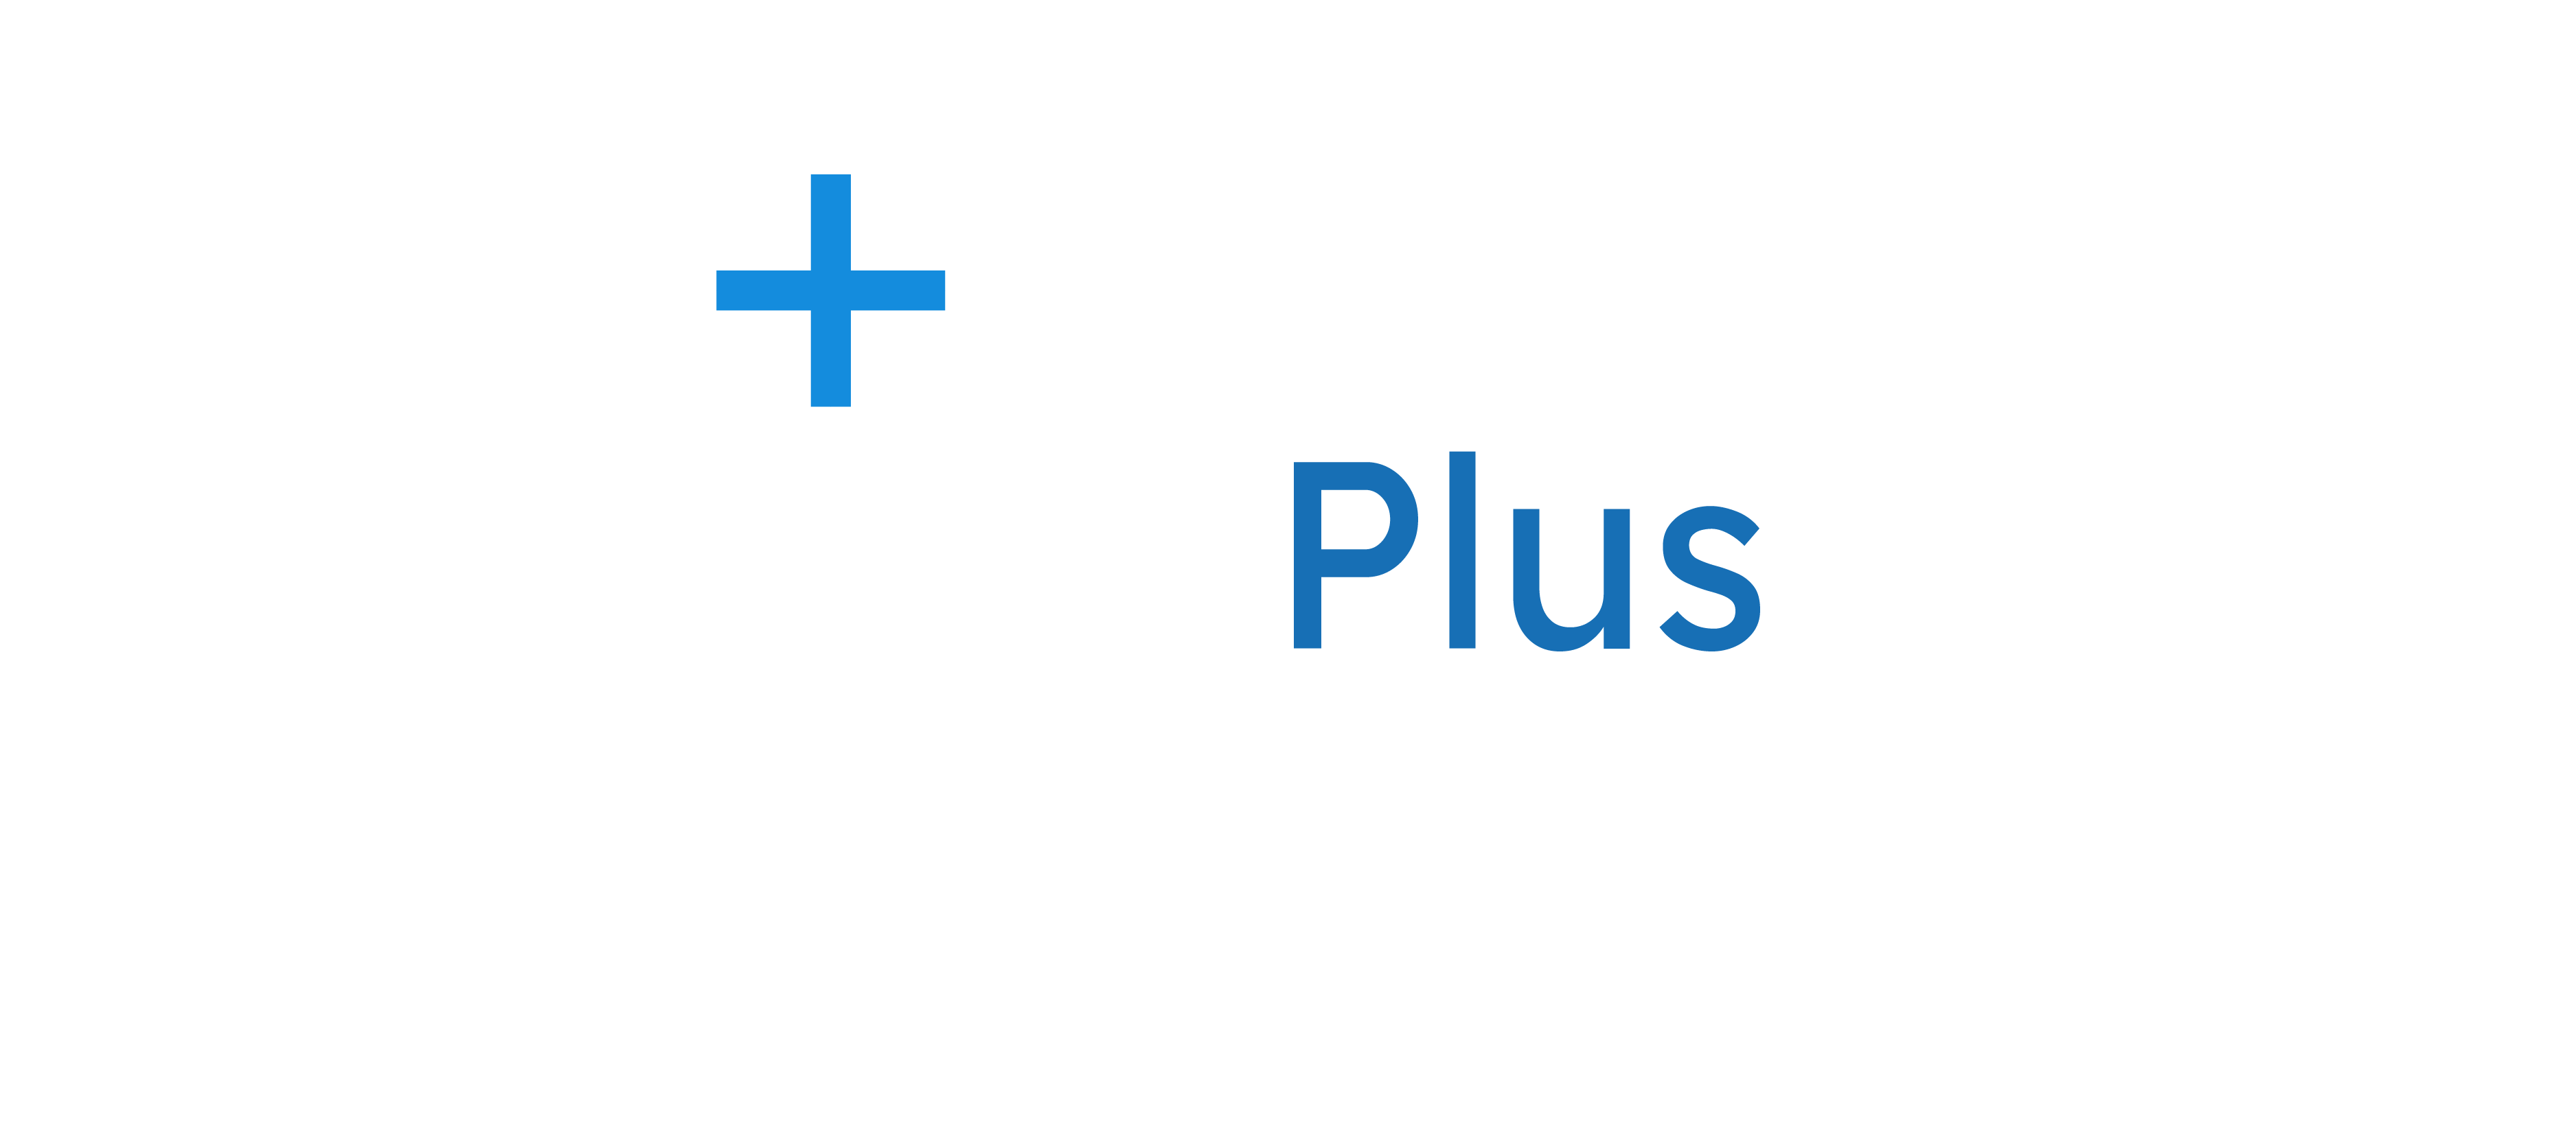 Me Plus More, Independence for all